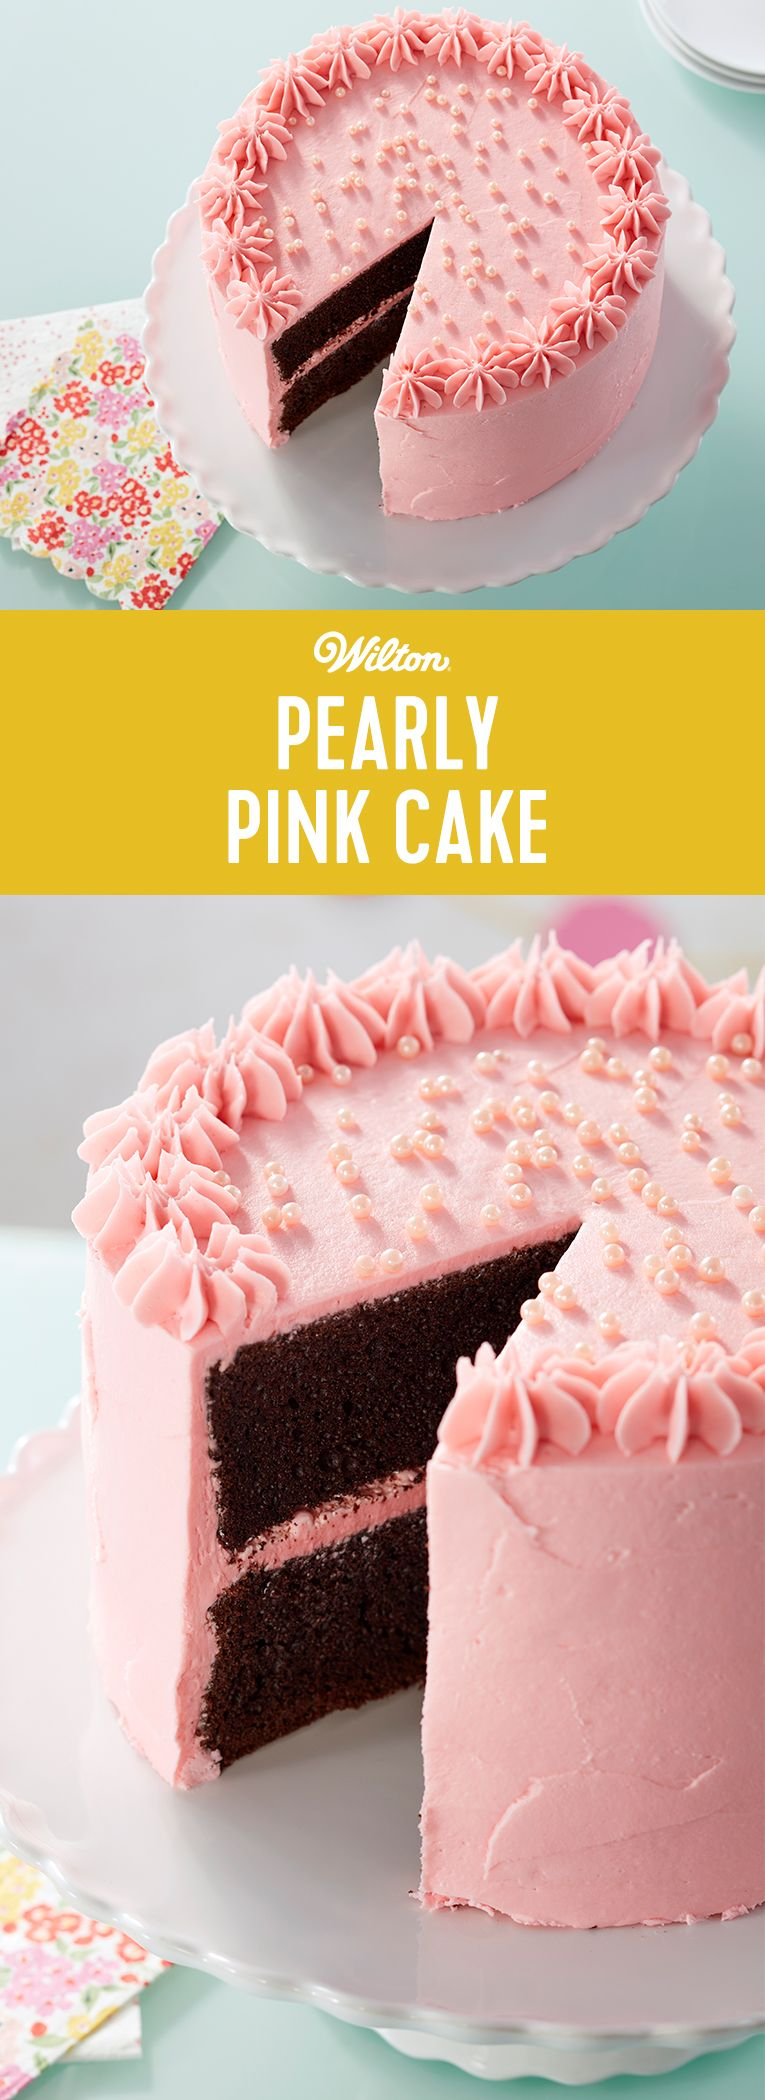 Pink Pearl Cake Recipe Easy Cake Decorating Pink Cake Cake Decorating For Beginners